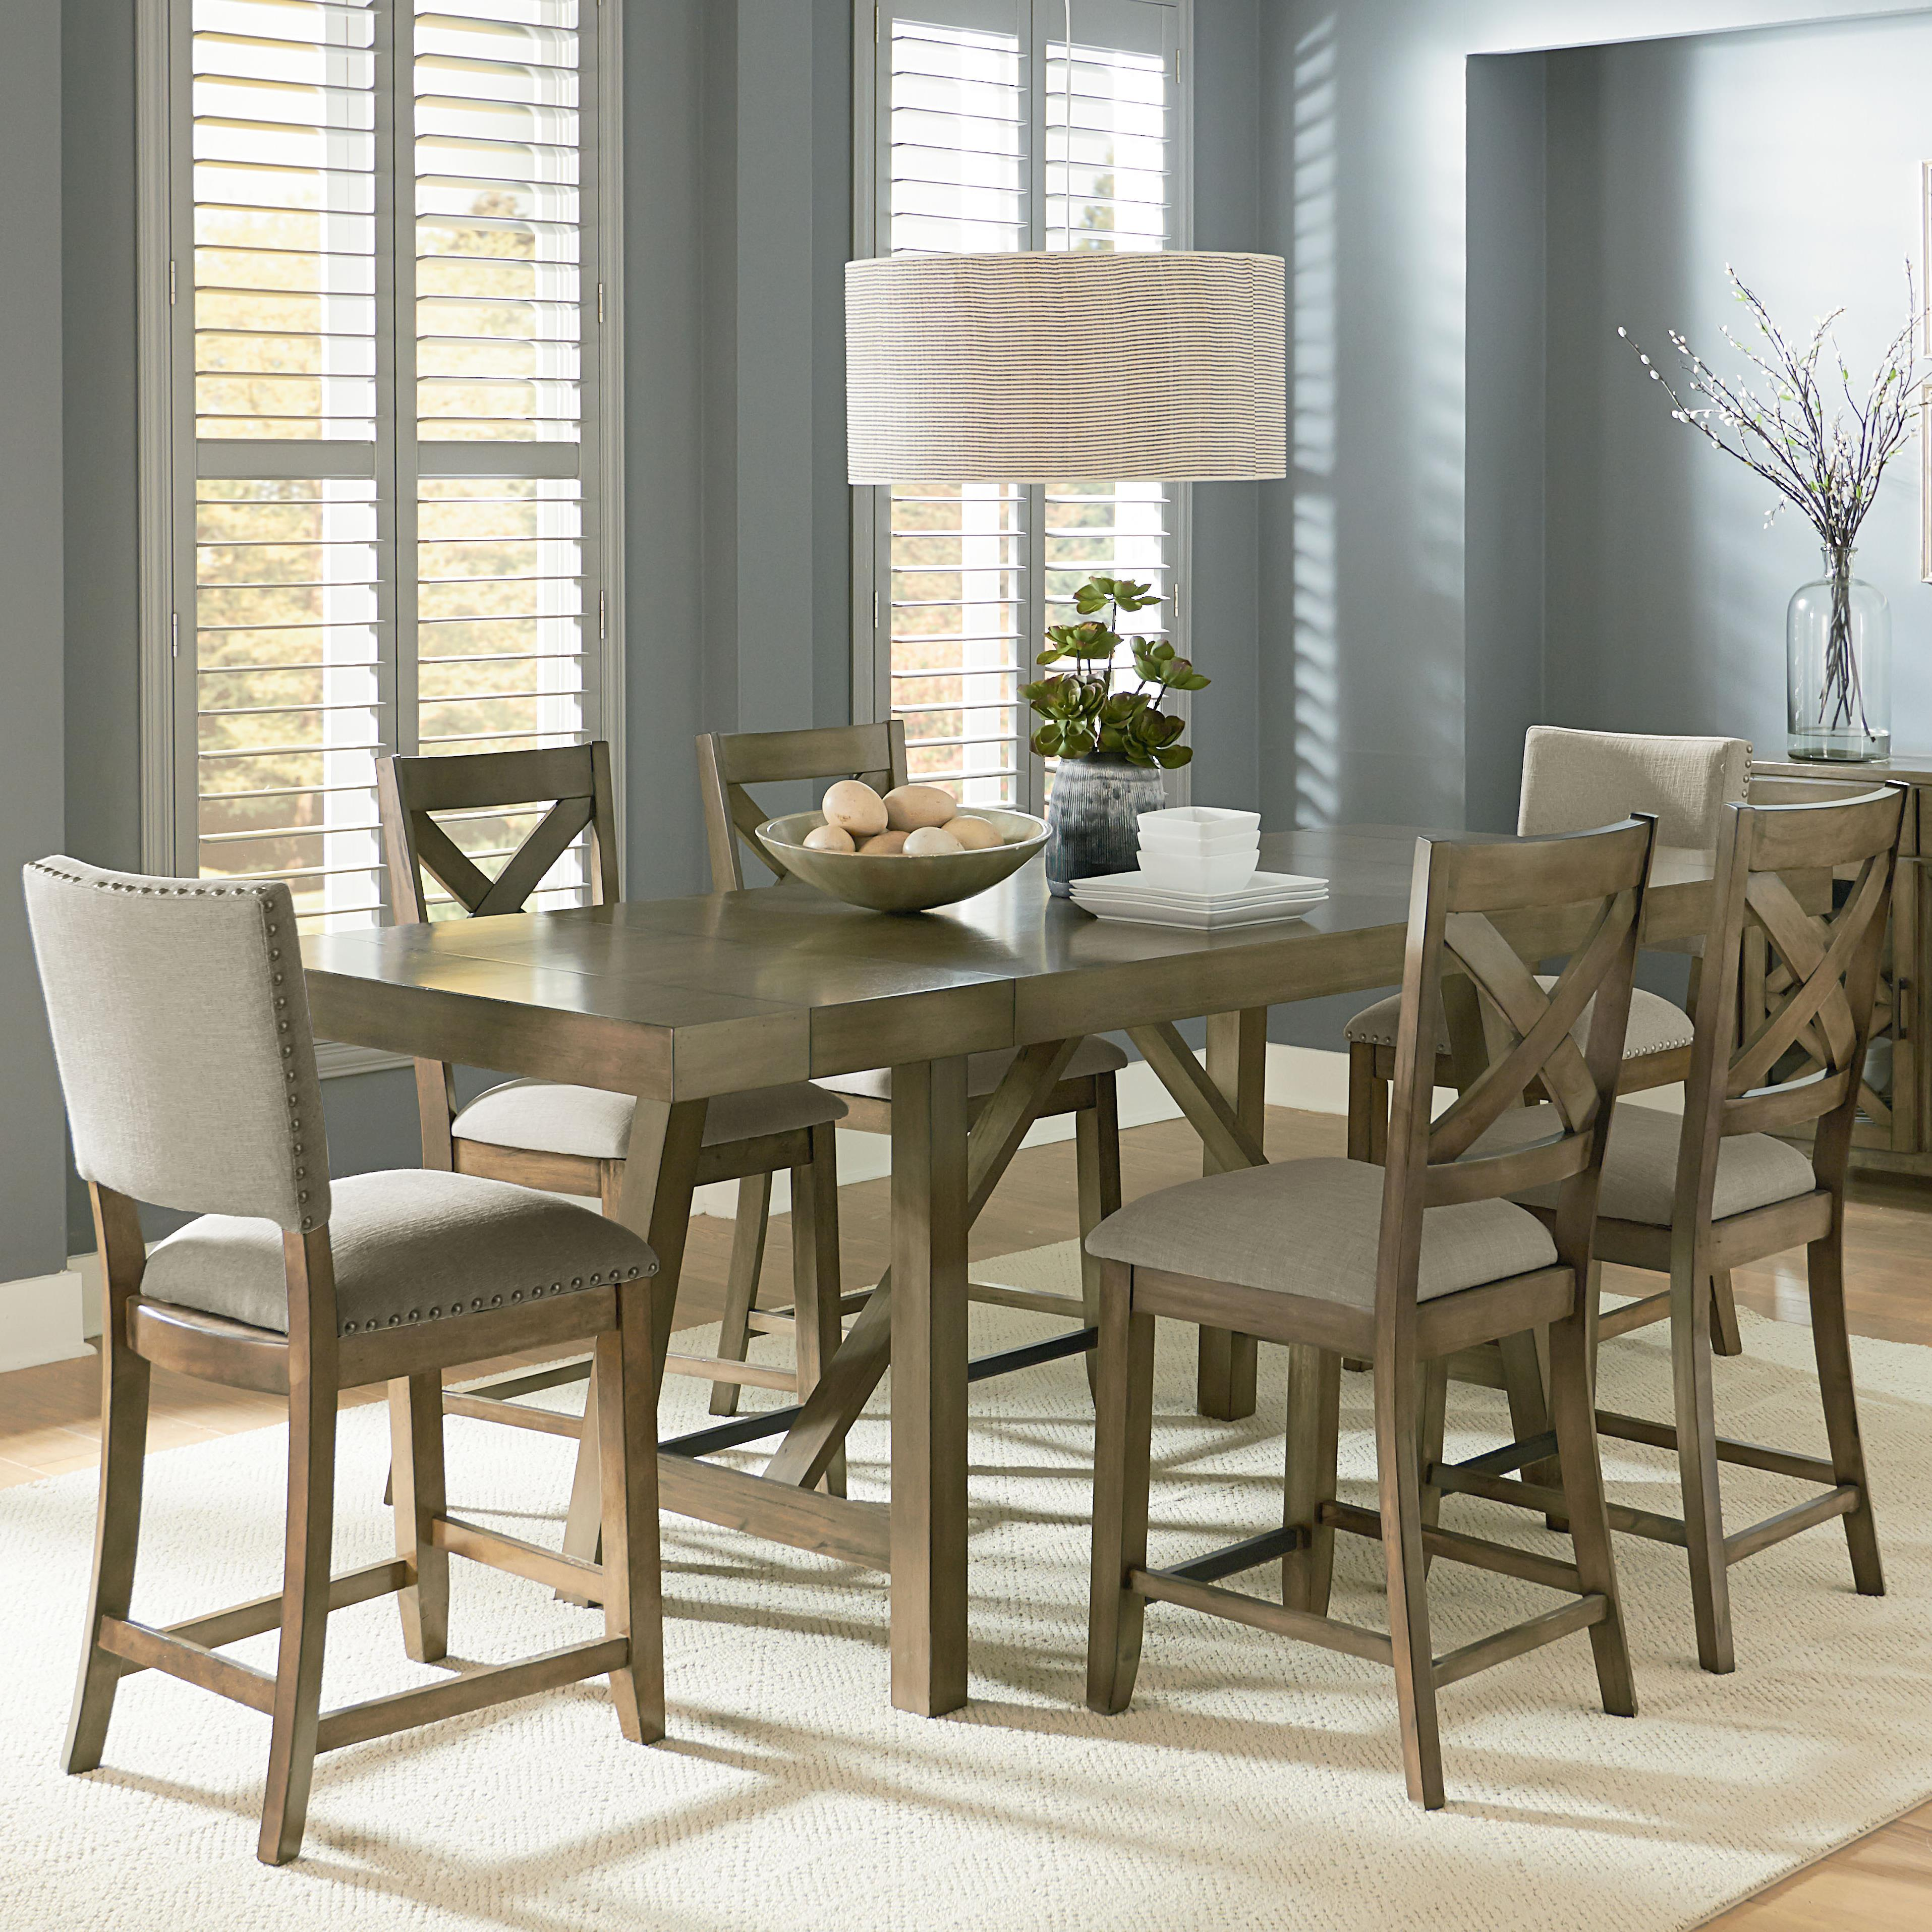 Counter Height 7 Piece Dining Room Table Set By Standard Furniture Wolf And Gardiner Wolf